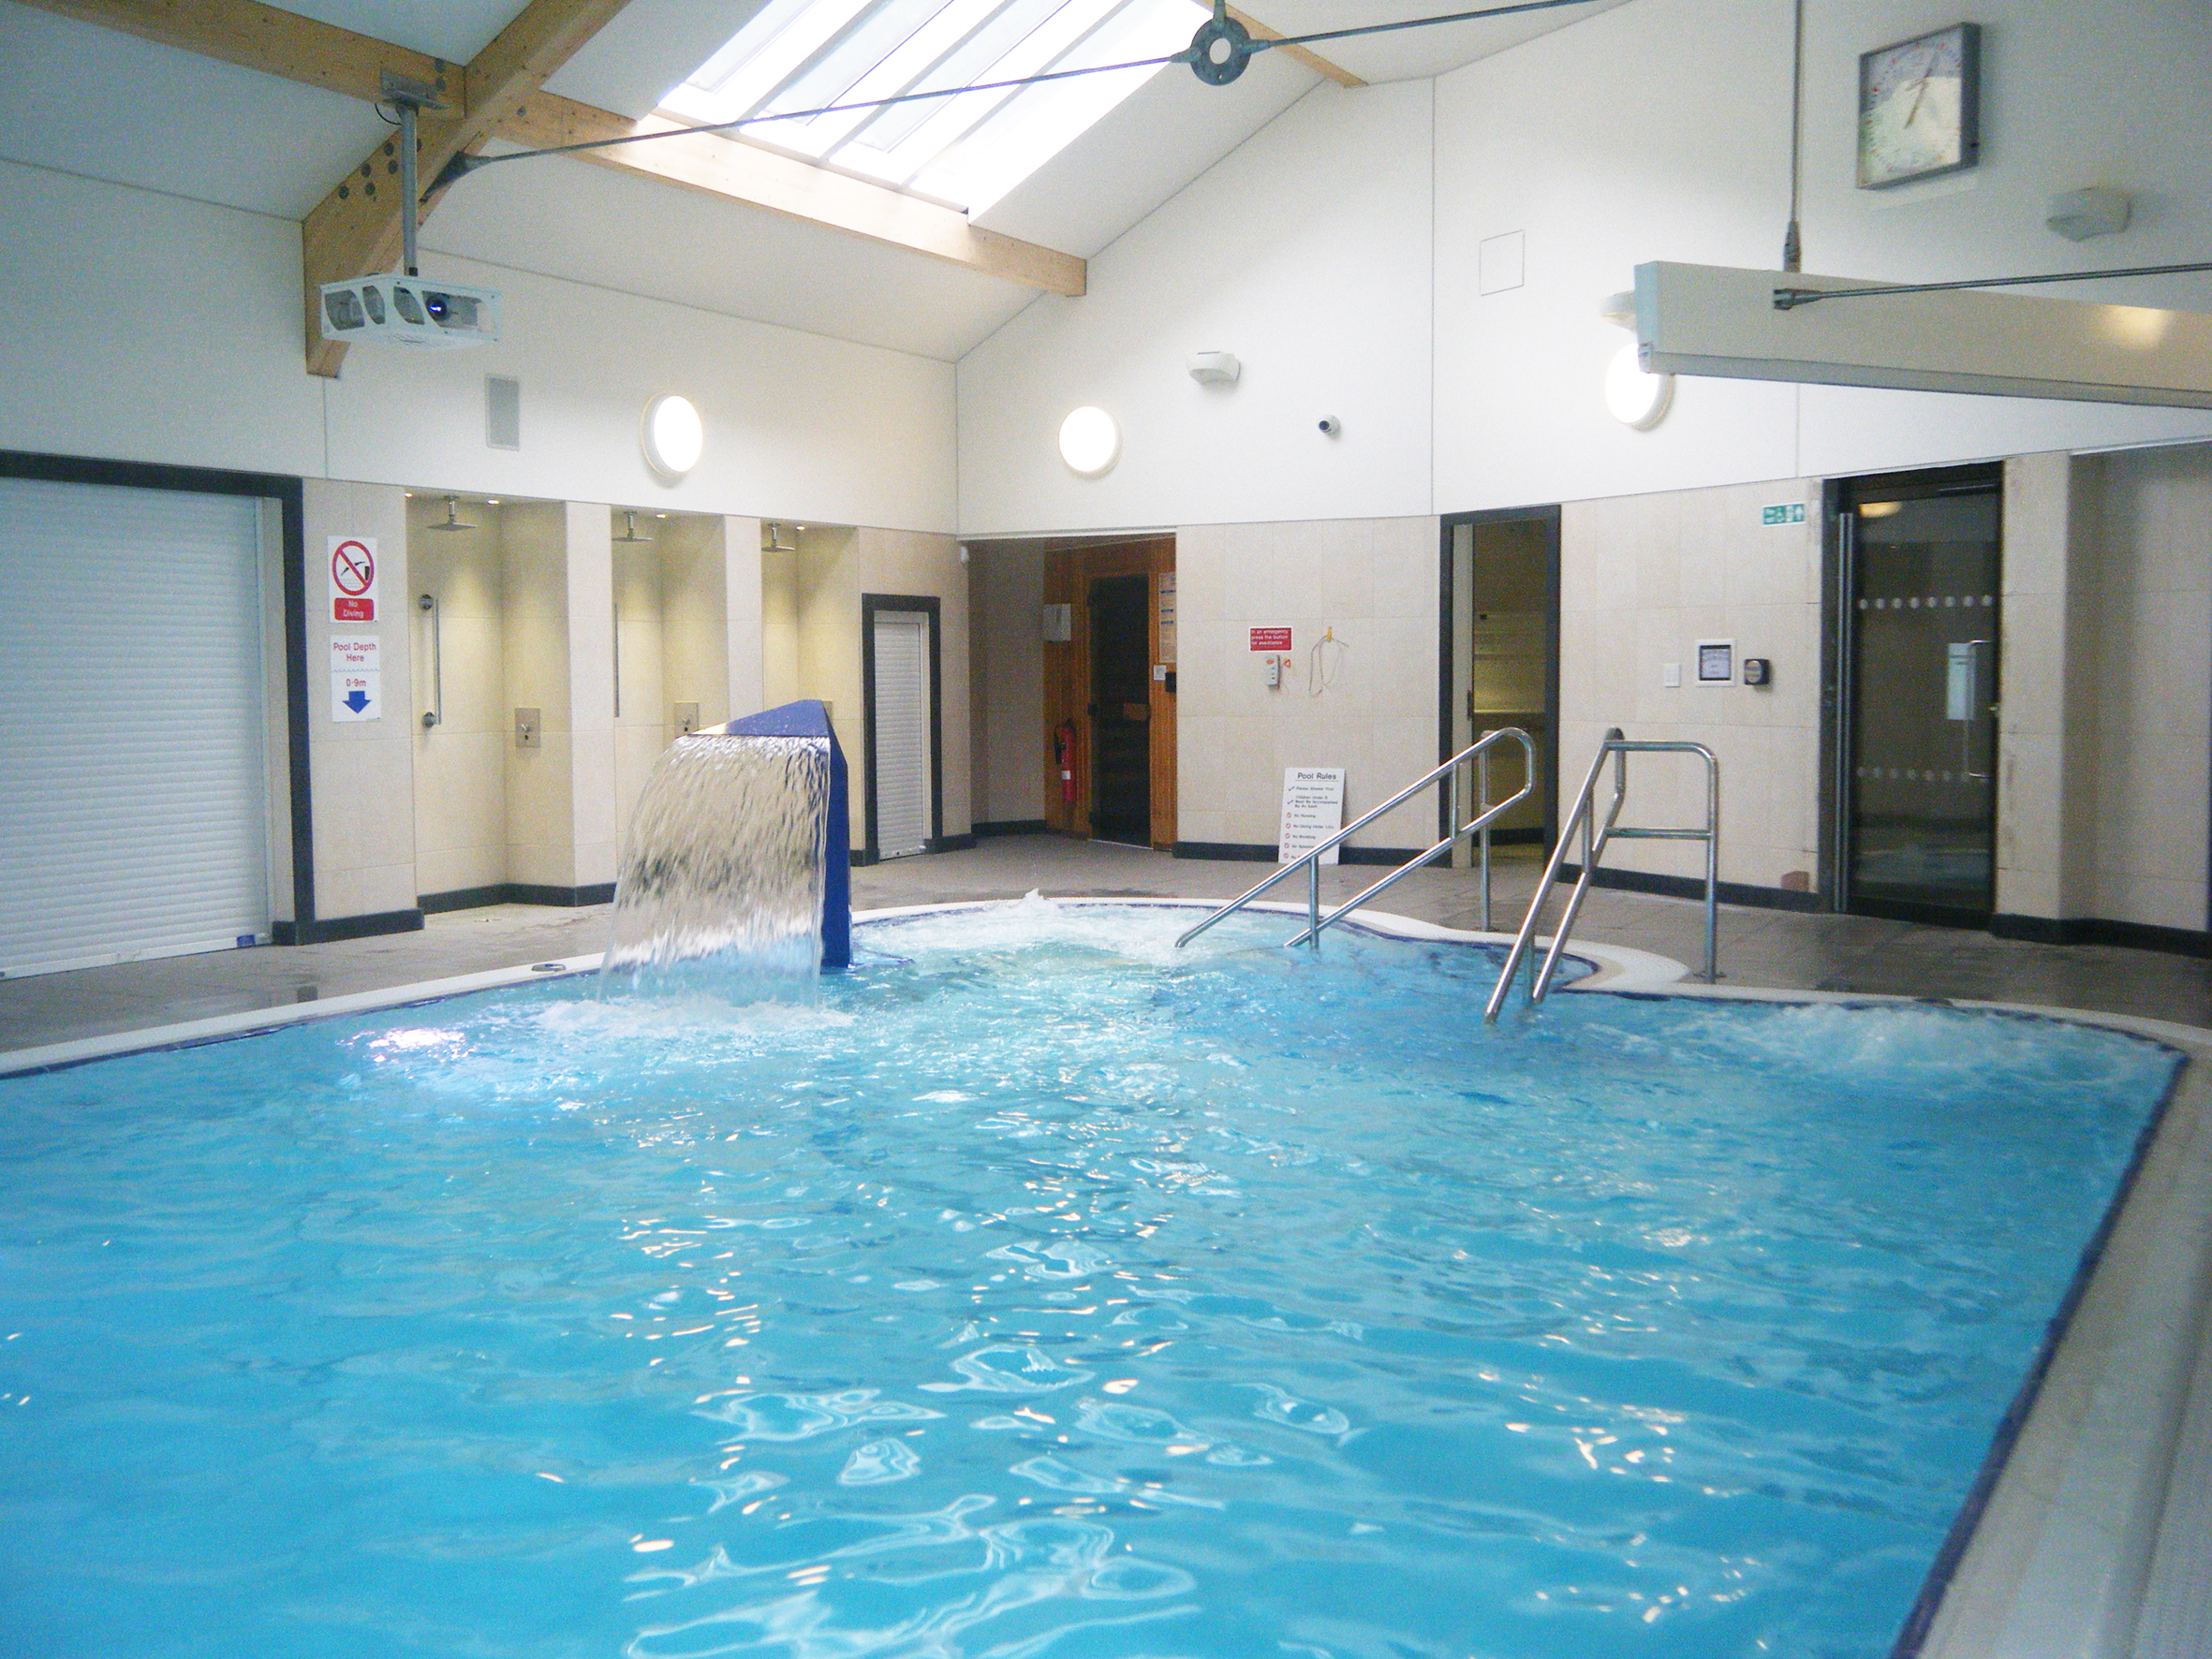 The Calvert Trust    Situated just four miles from Keswick, the Lake District Calvert Trust is an outdoor activities centre for people with disabilities. Although we only offer activities to residents, we do have a hydrotherapy pool and sensory room that is open to the public every day of the week. We also have stables on the outside of Keswick where (dependent on availability) visitors to the area can book riding sessions.  Little Crosthwaite, Keswick, Cumbria, CA12 4QD  017687 72255